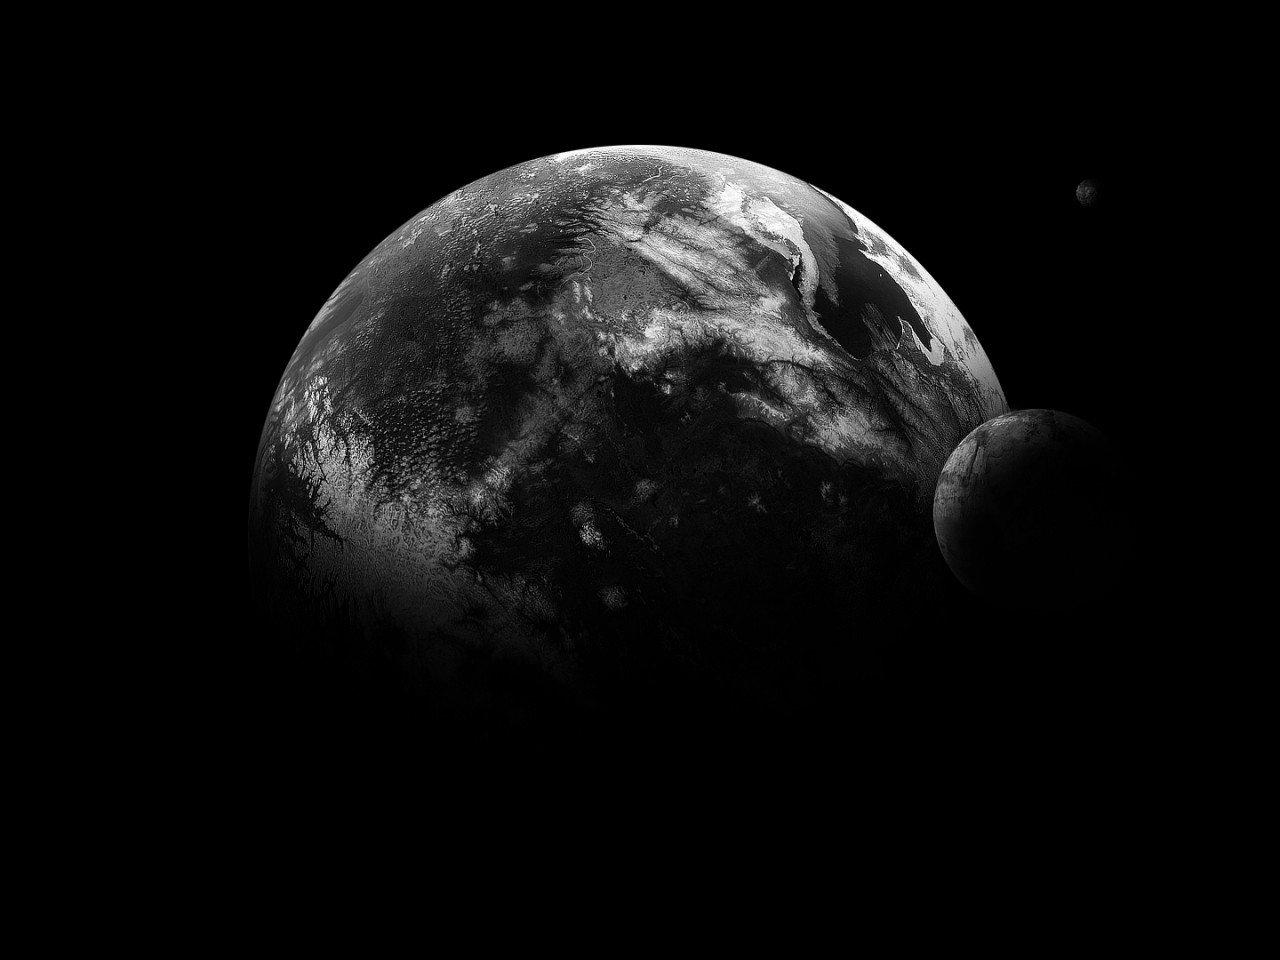 Download 600+ Wallpaper Black Earth  Paling Keren